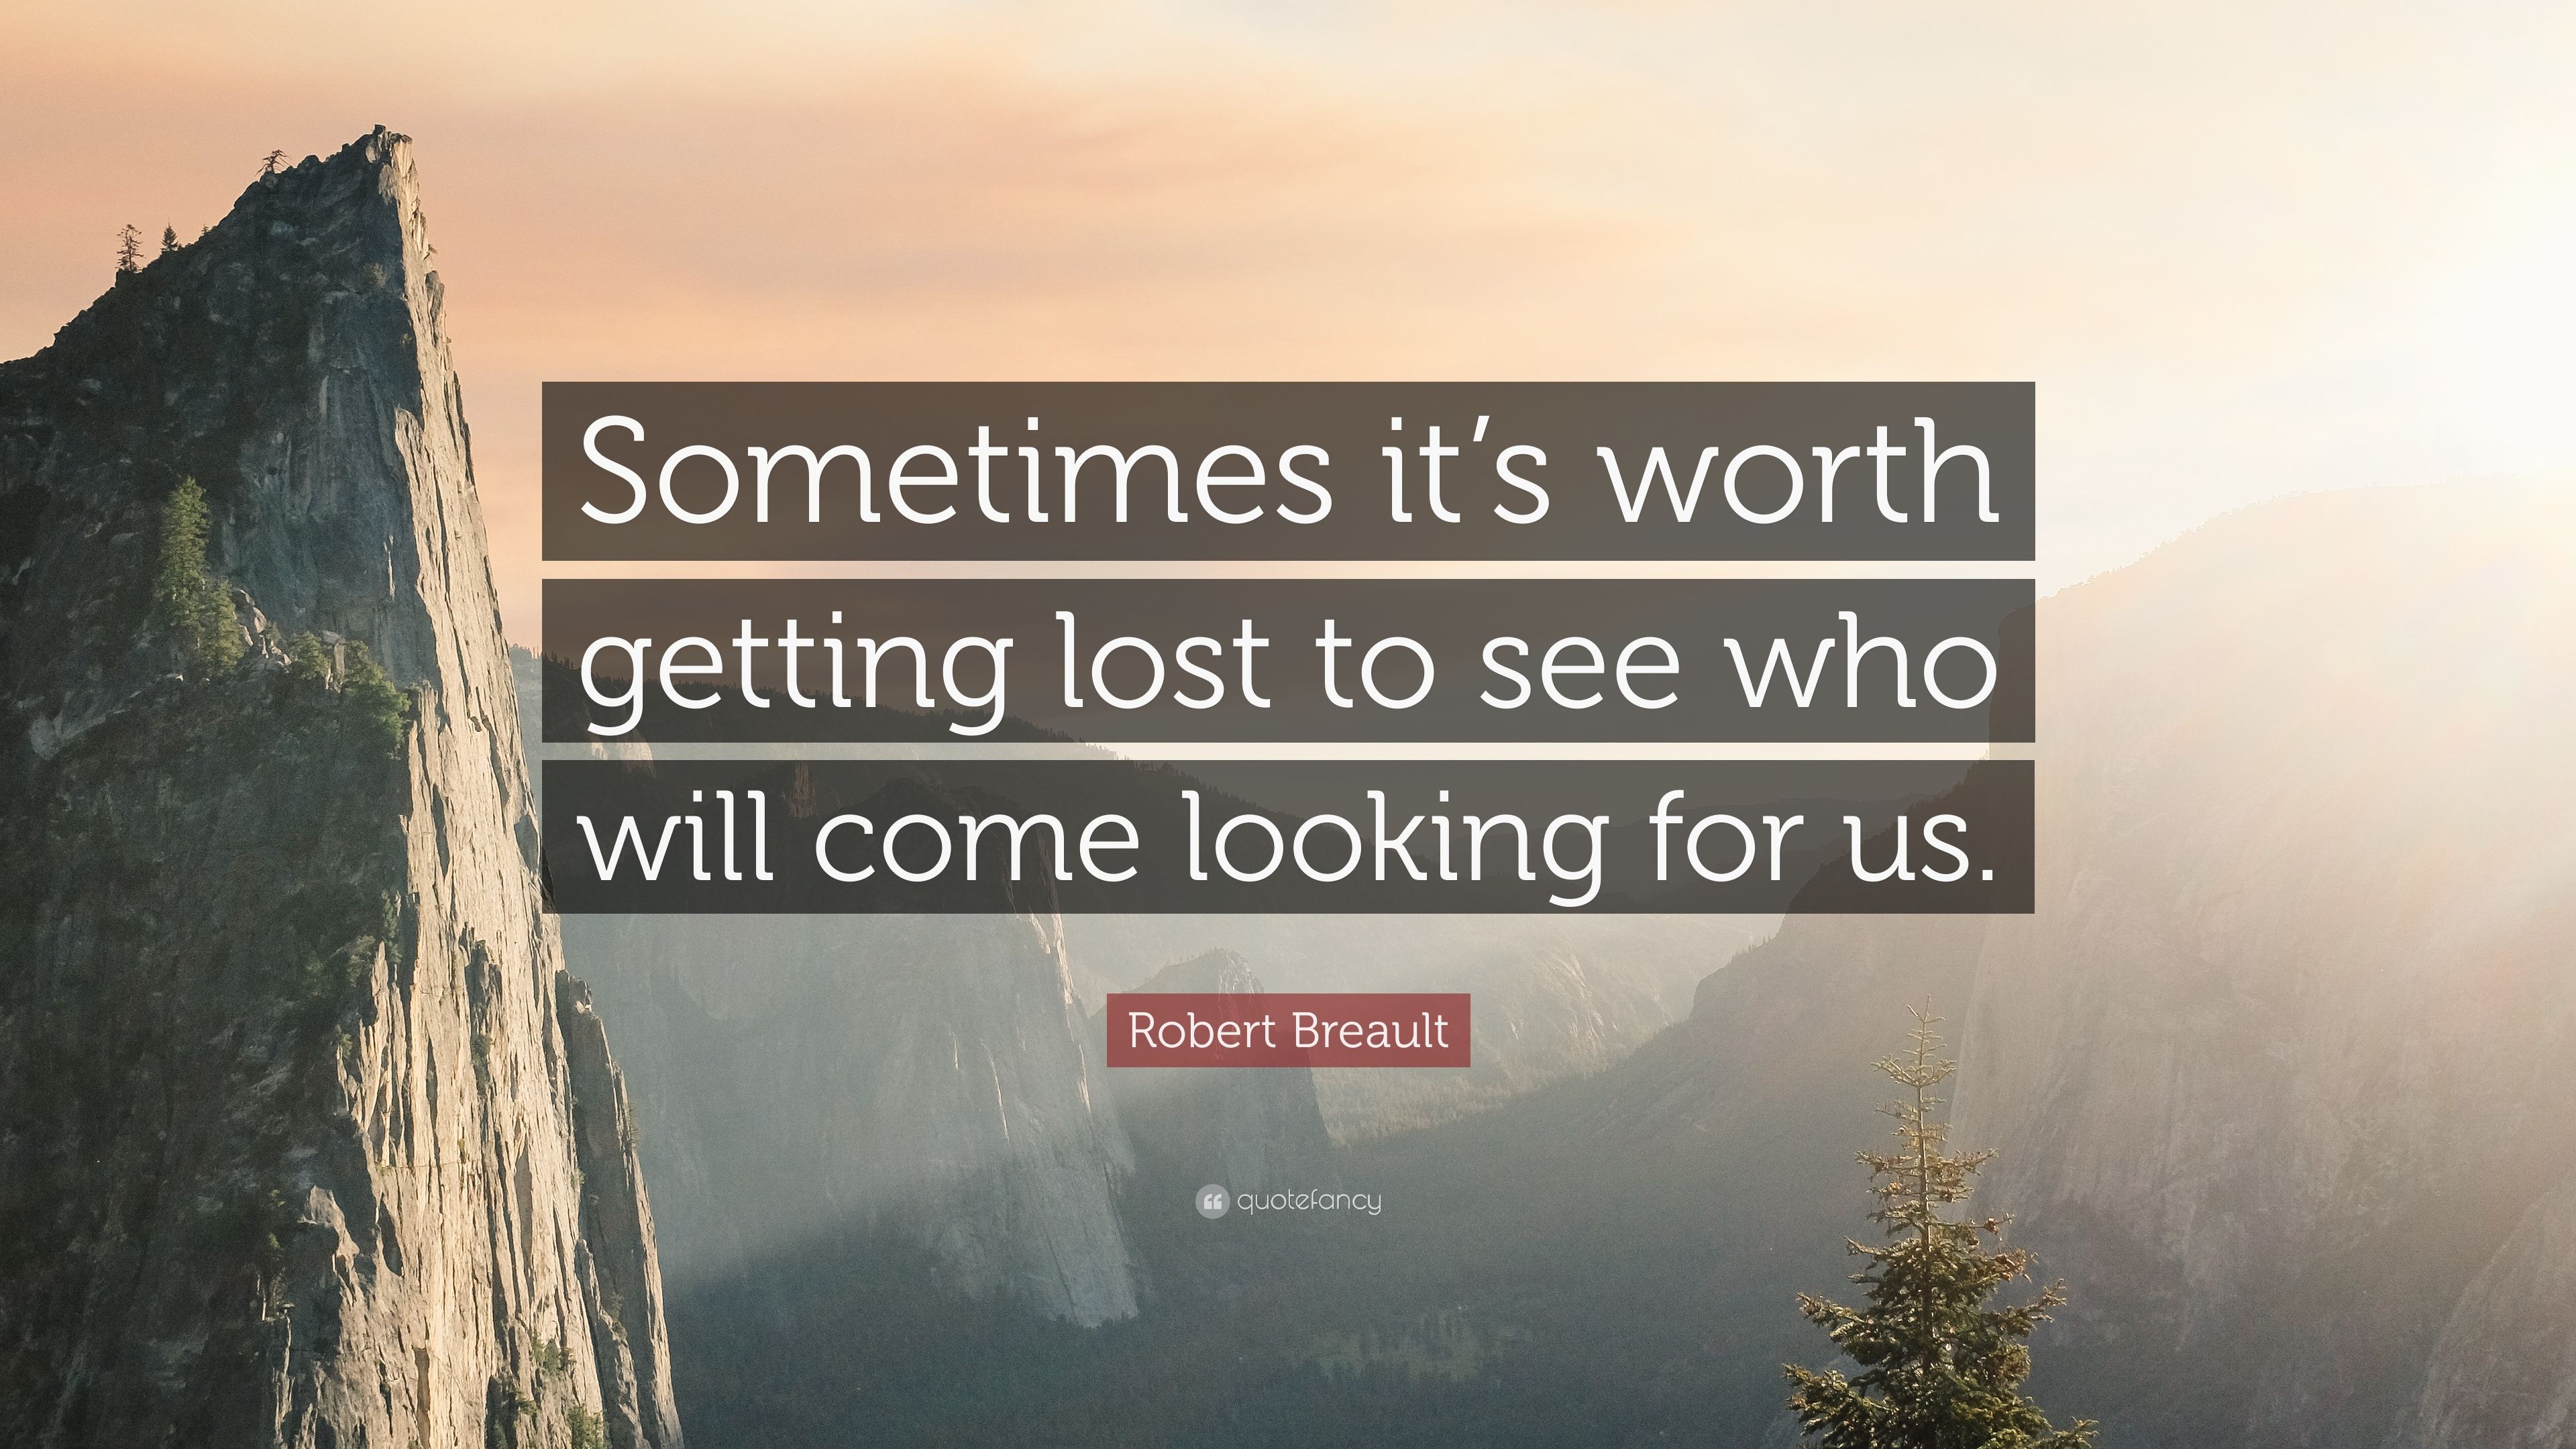 556212-Robert-Breault-Quote-Sometimes-it-s-worth-getting-lost-to-see-who.jpg